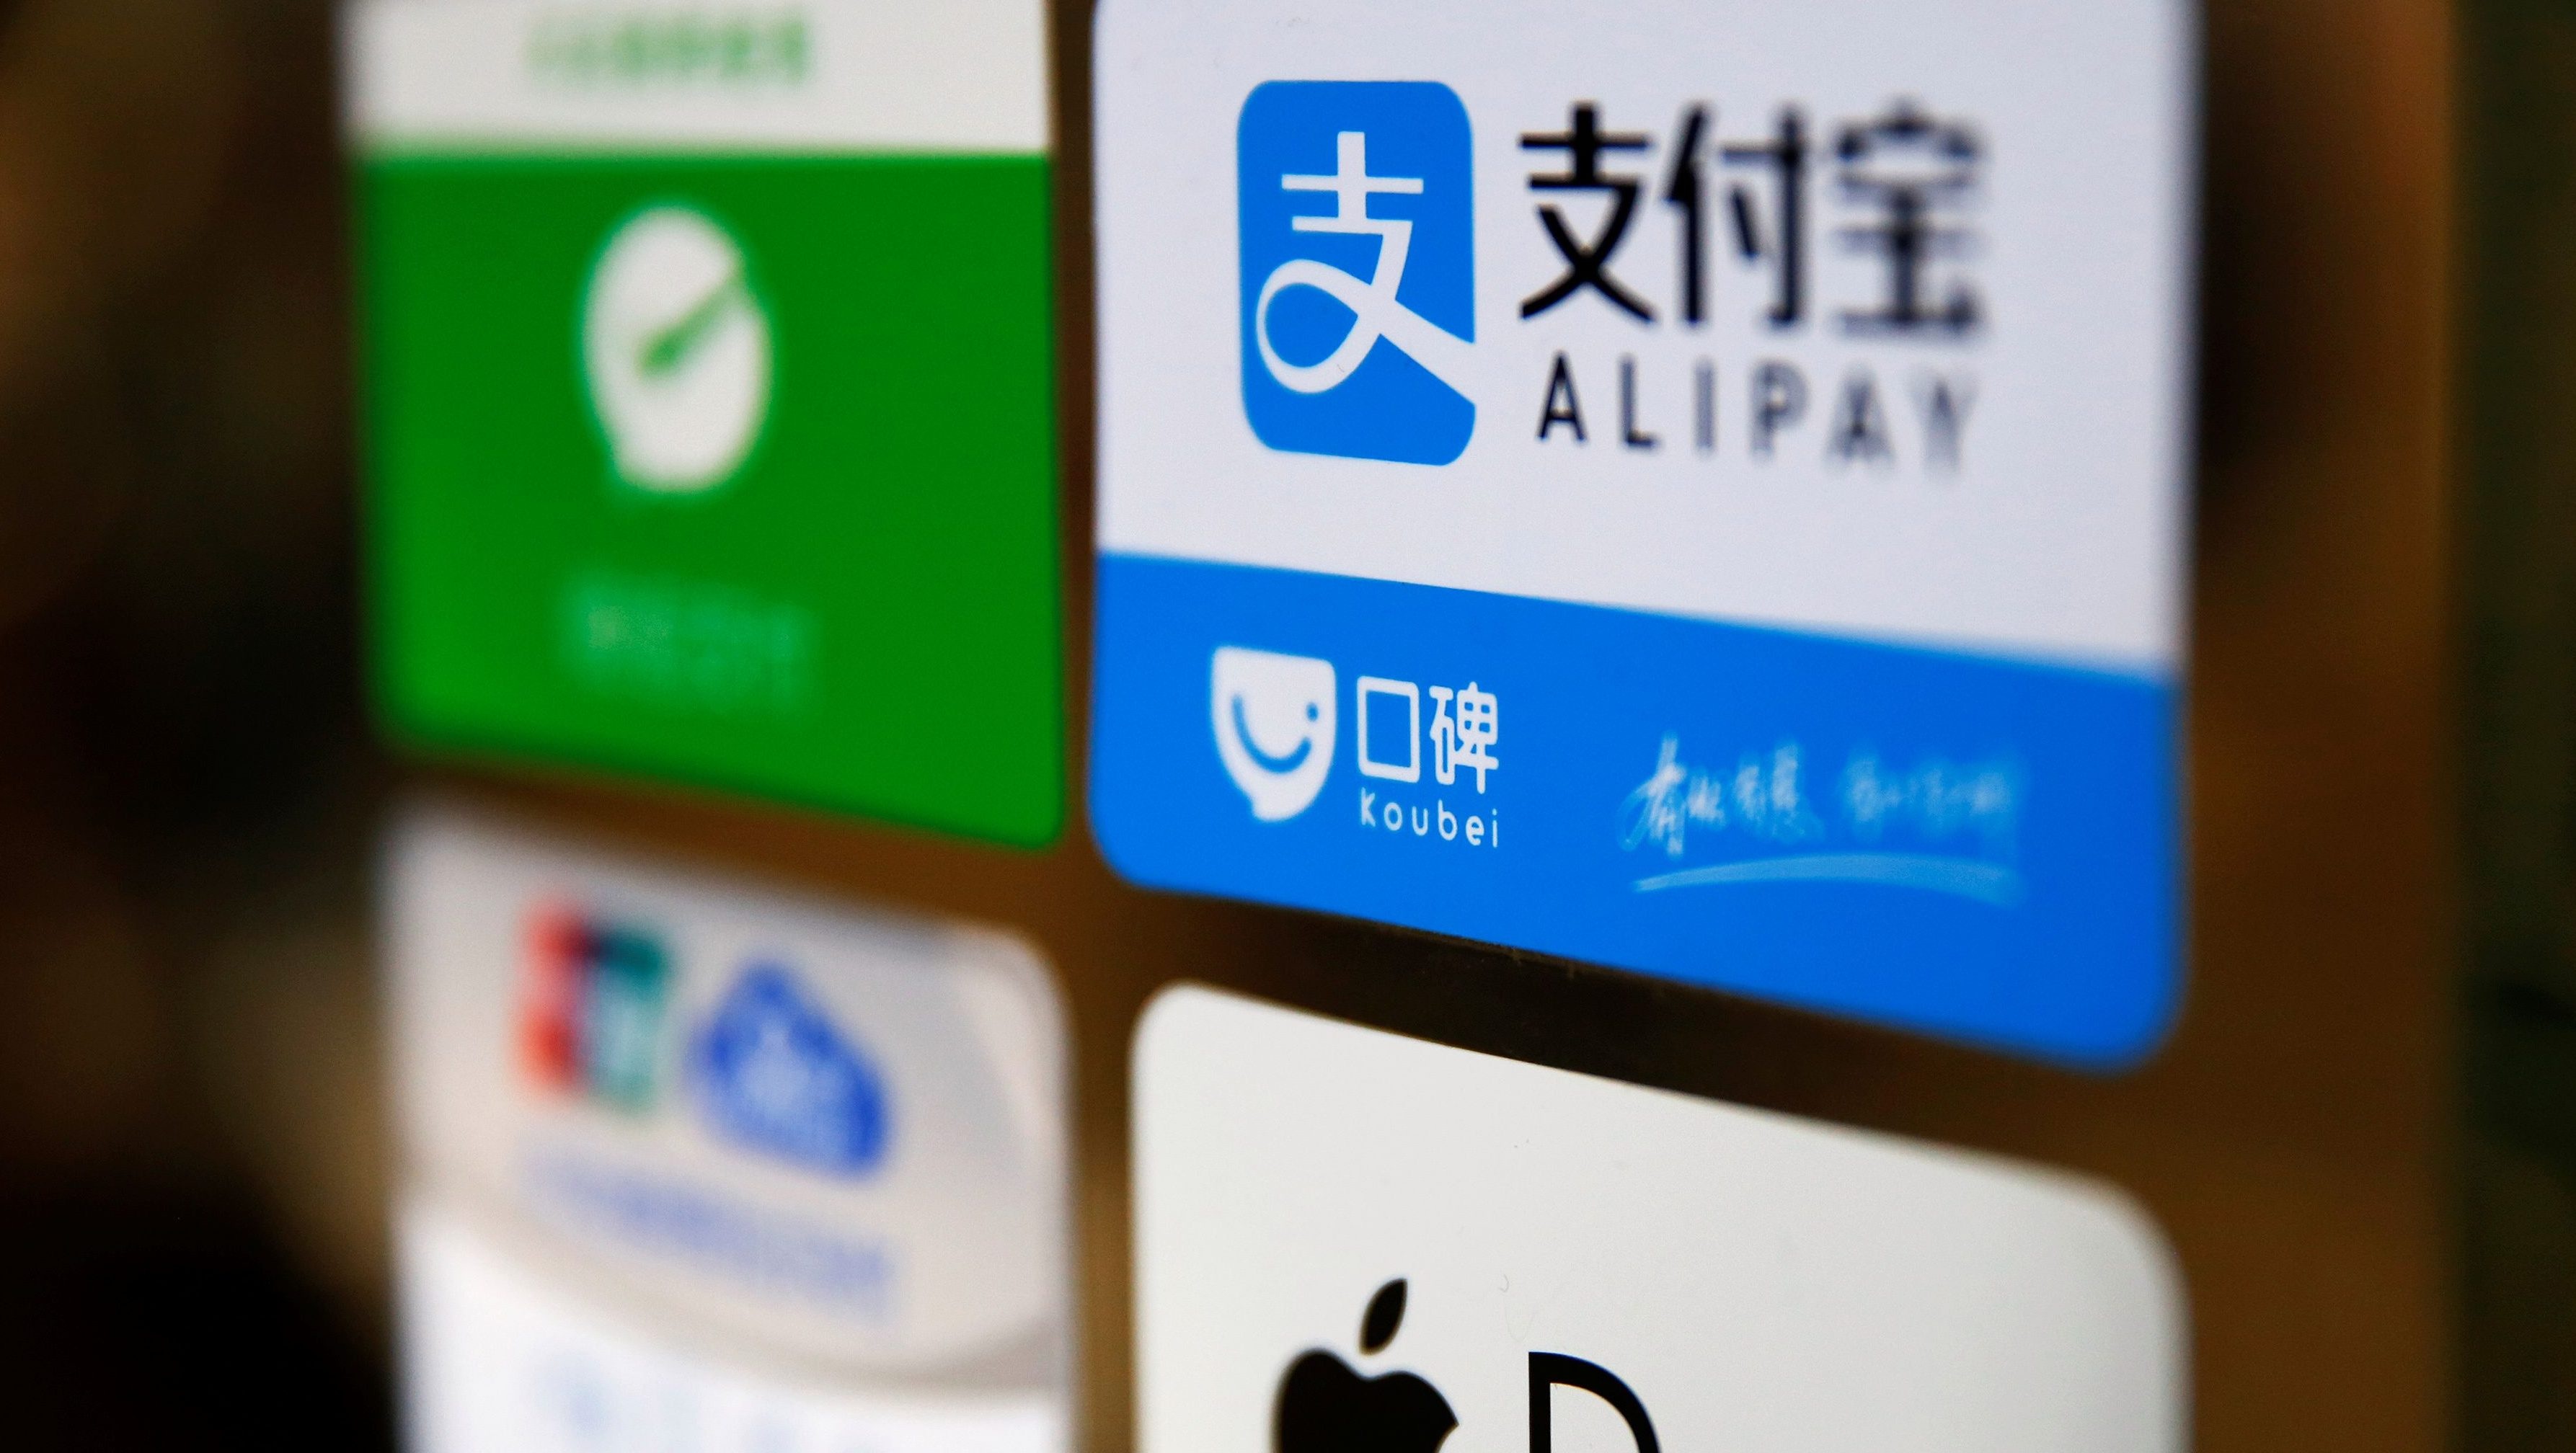 The latest frontier of China's mobile payments boom is